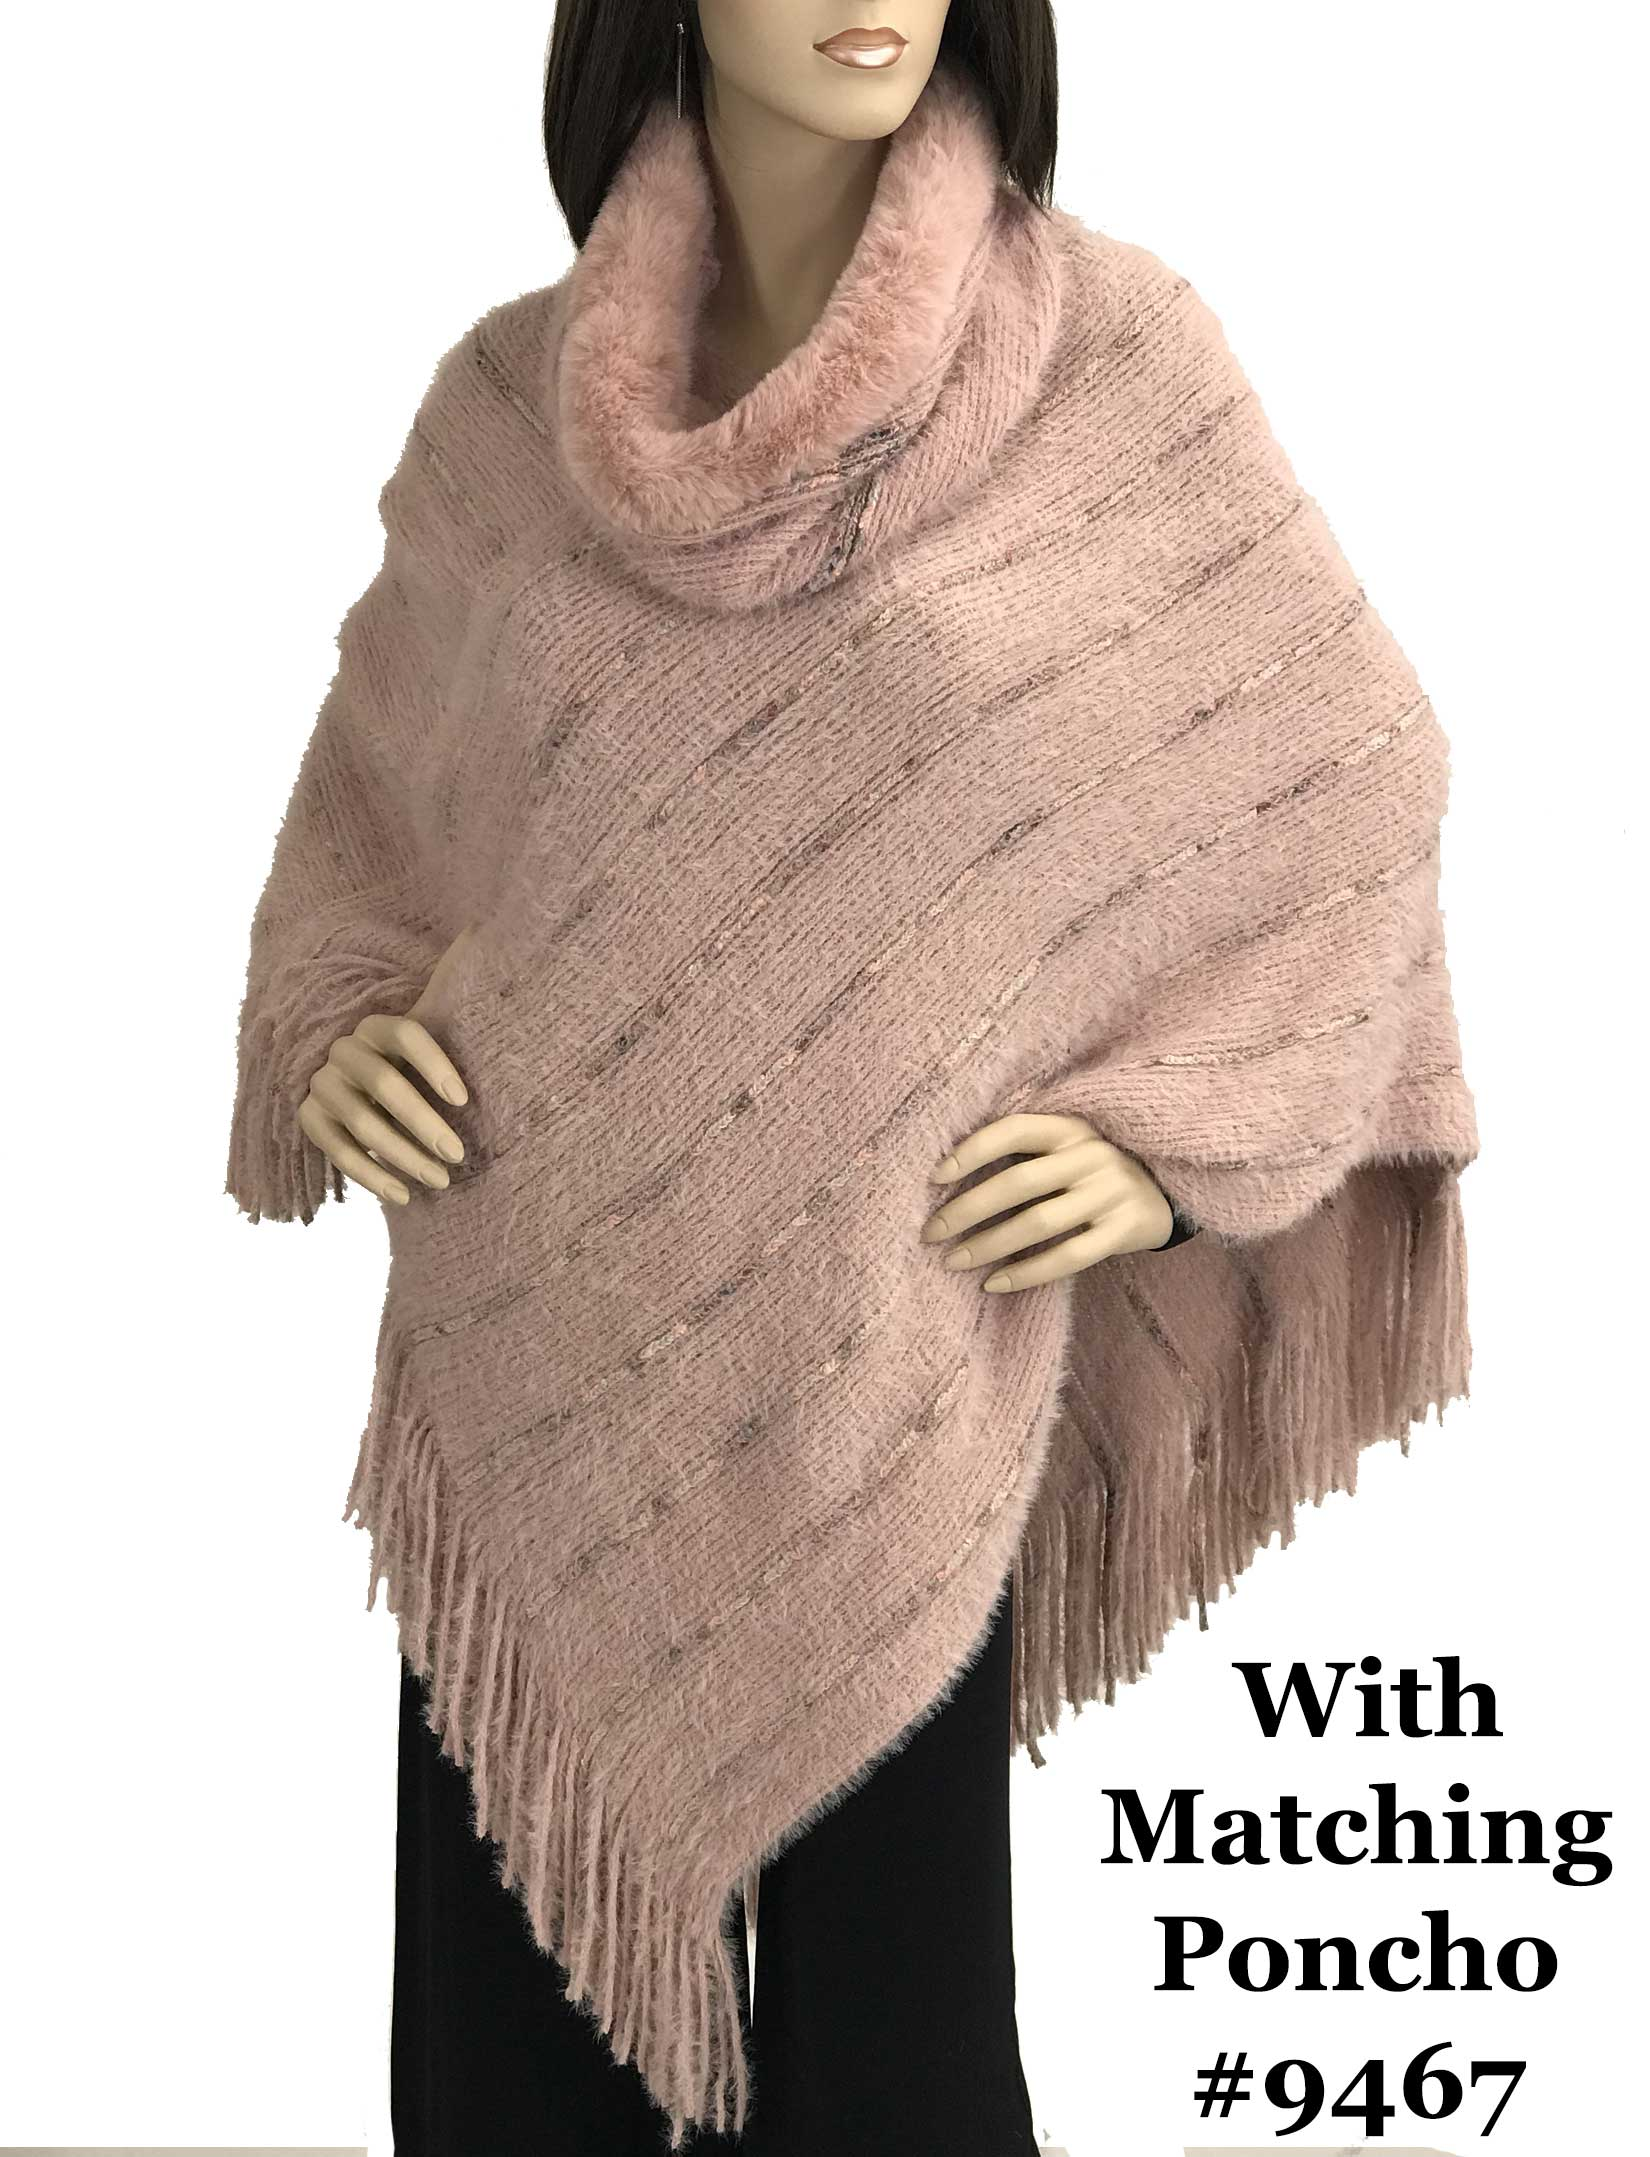 wholesale with poncho